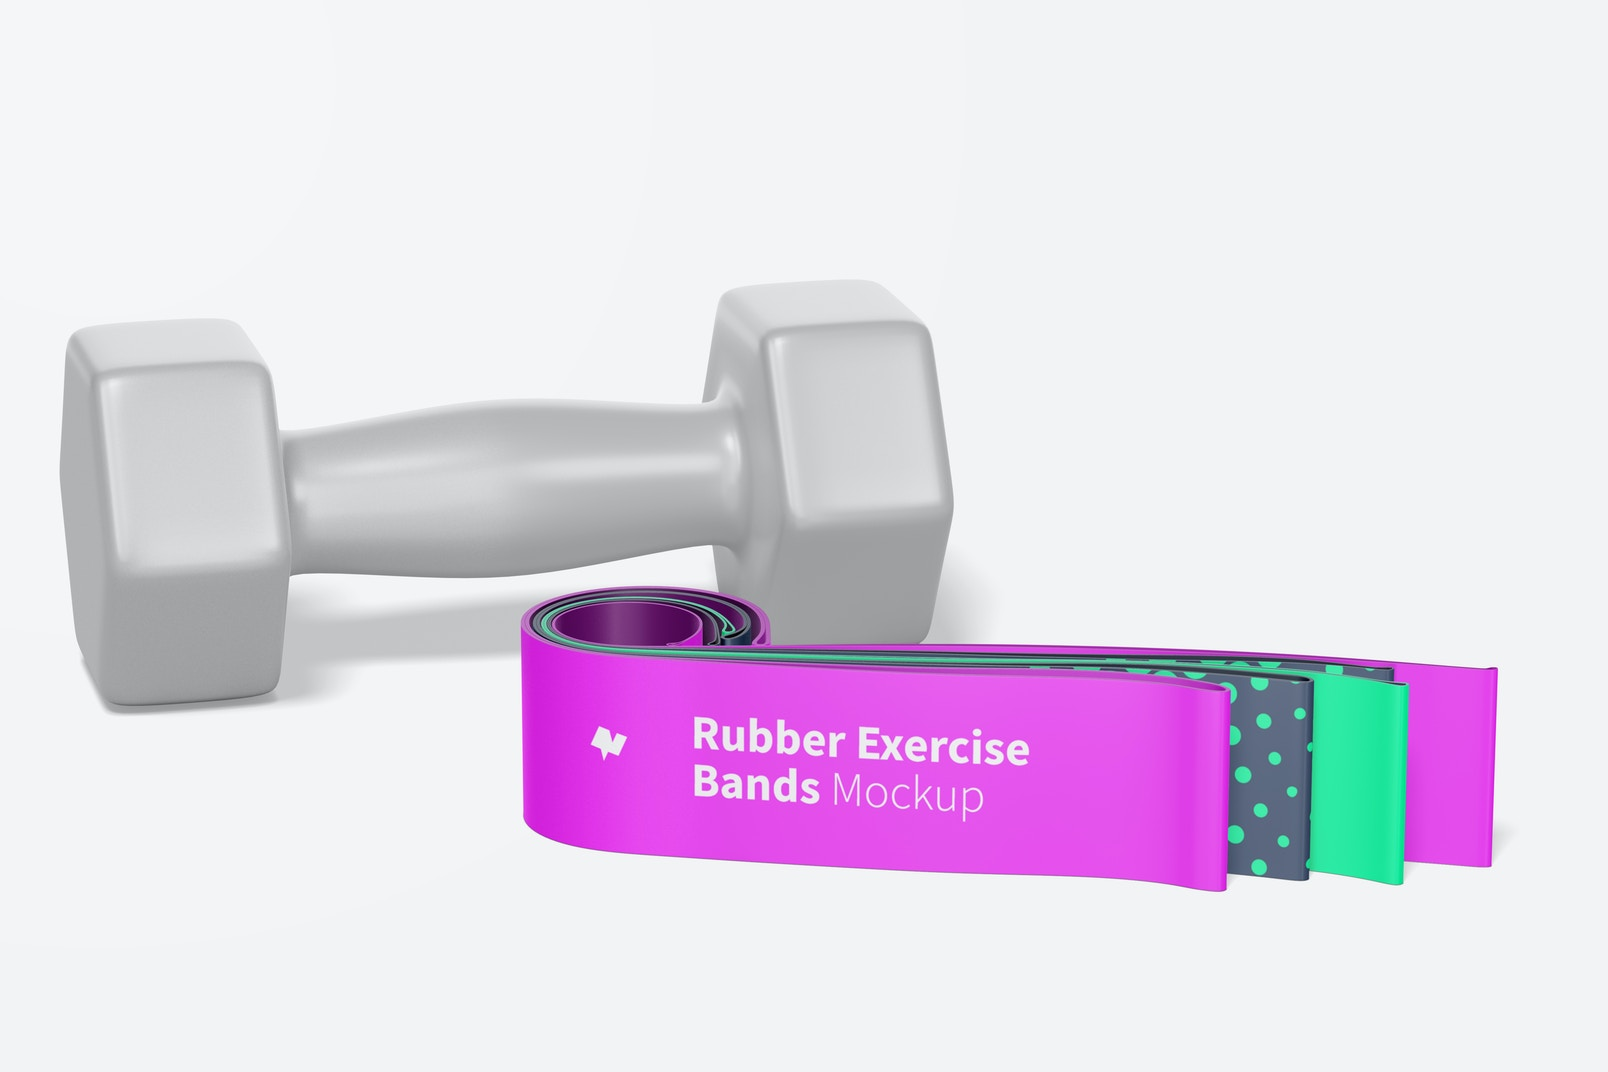 Rubber Exercise Bands Mockup, Front View